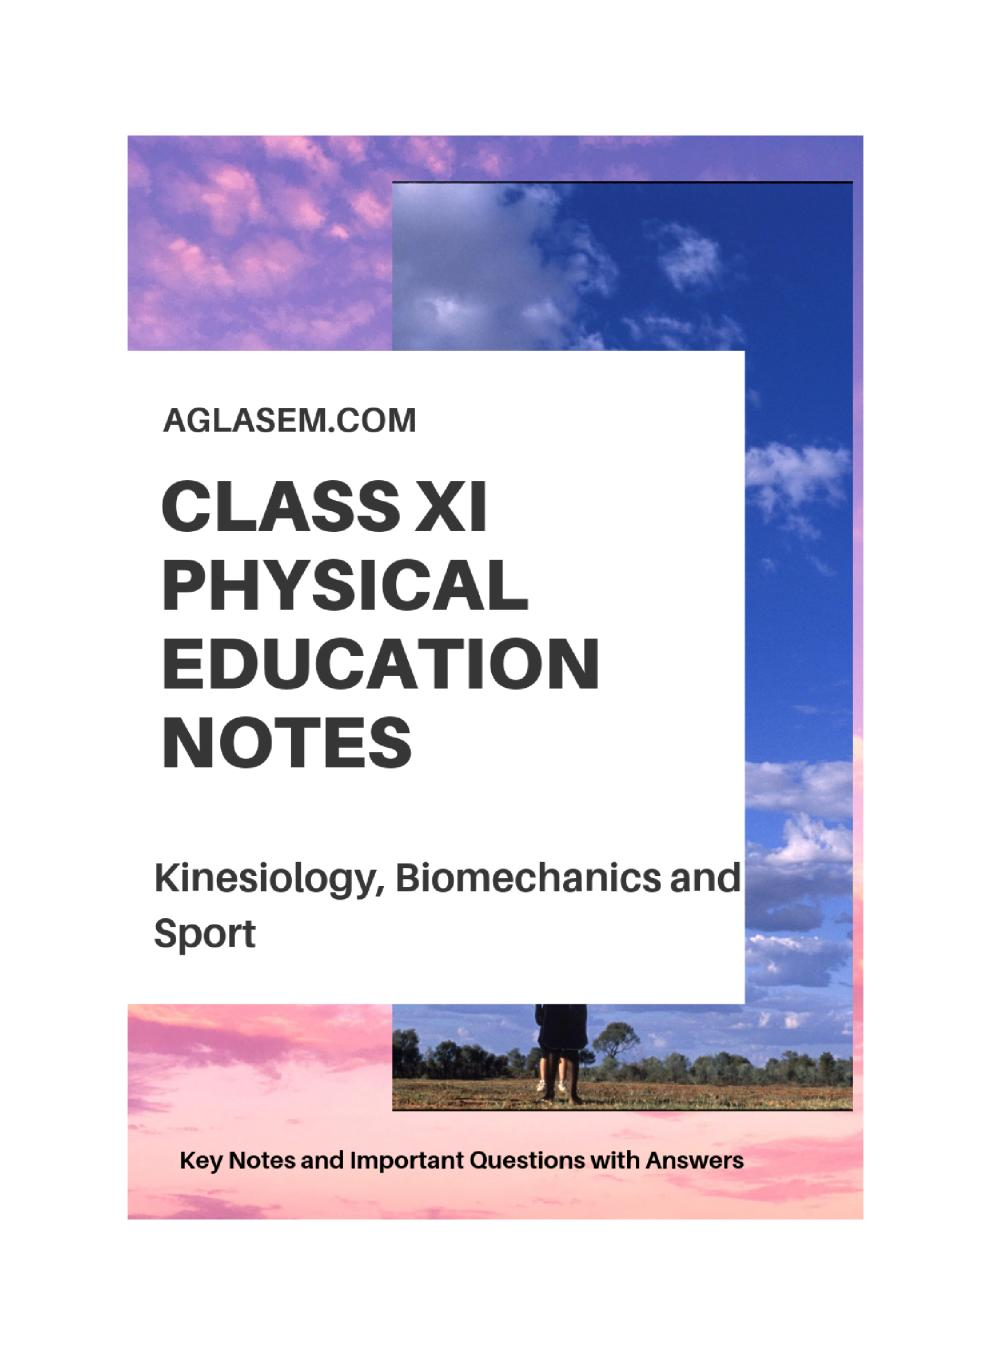 Class 11 Physical Education Notes For Kinesiology, Biomechanics, and Sports